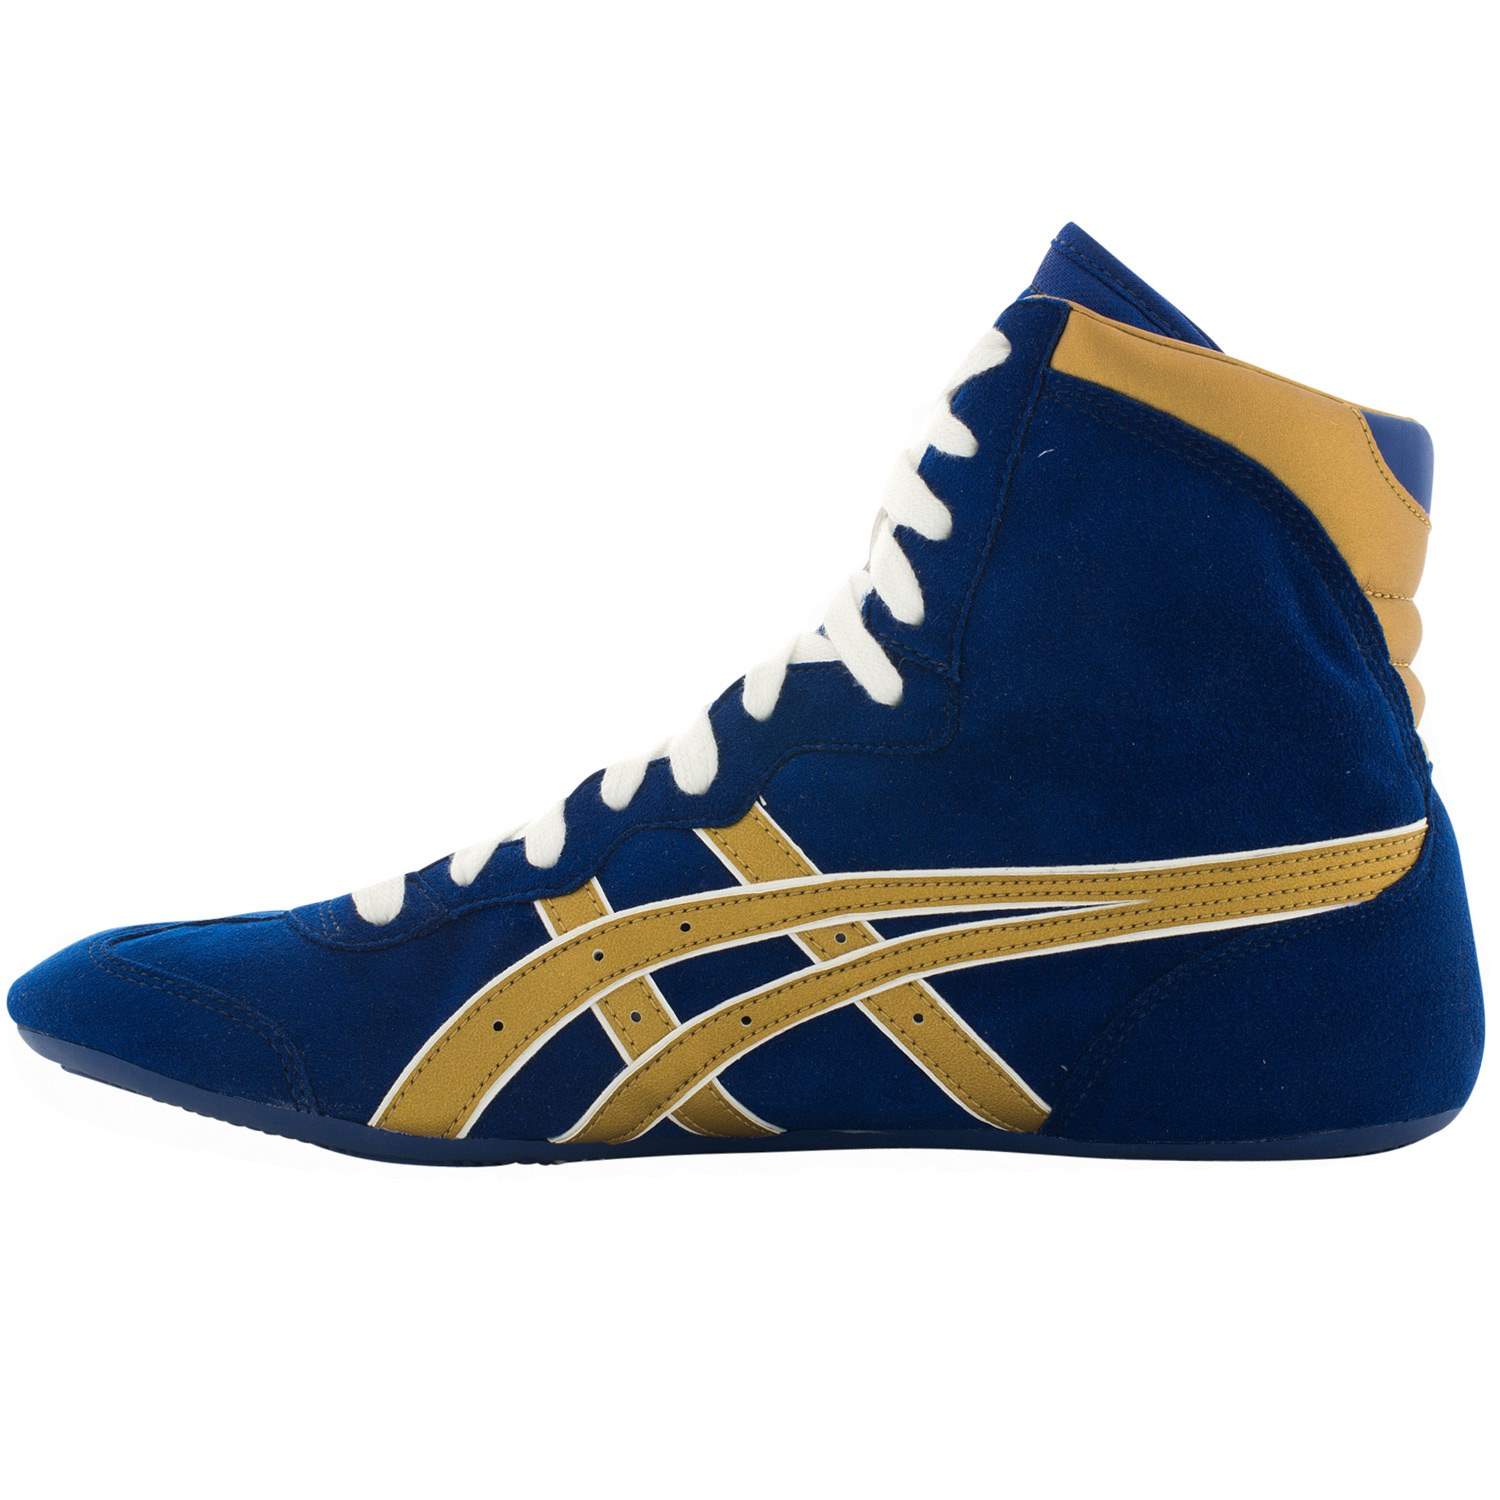 ASICS Dave Schultz Classic Shoes | WrestlingMart | Free Shipping